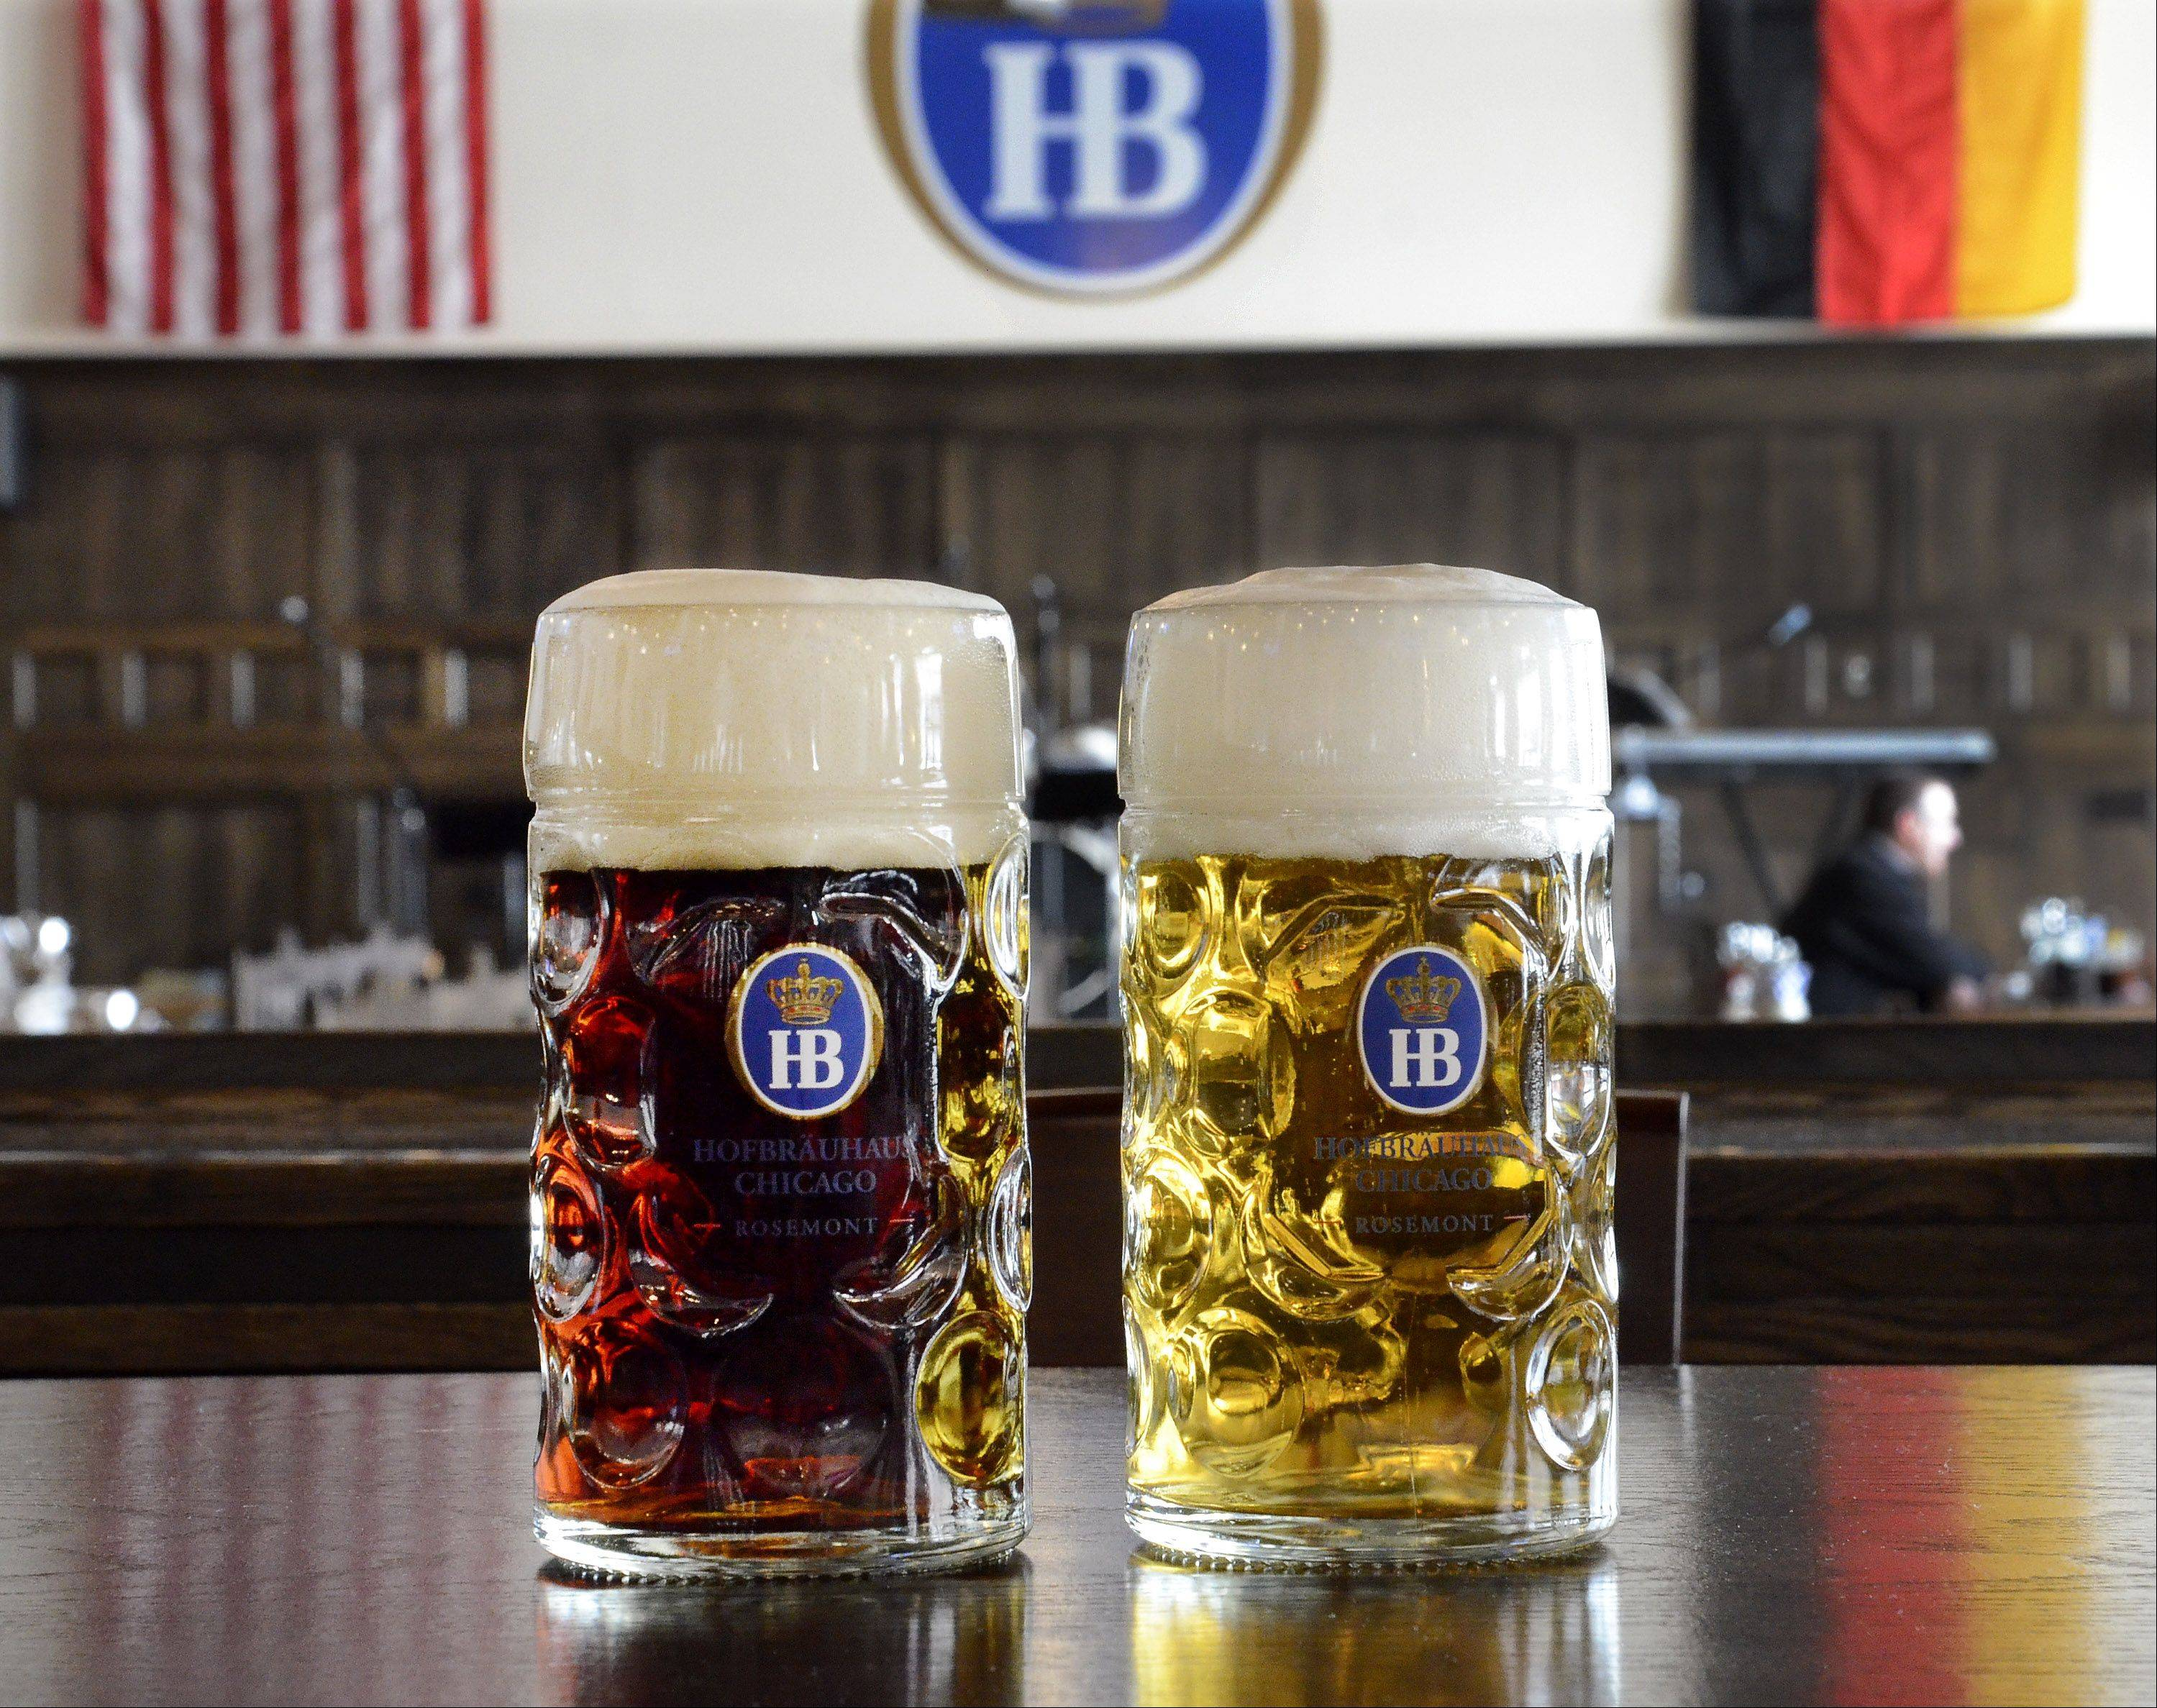 Hofbrauhaus' dunkel, left, and lager are available in 1-liter steins.